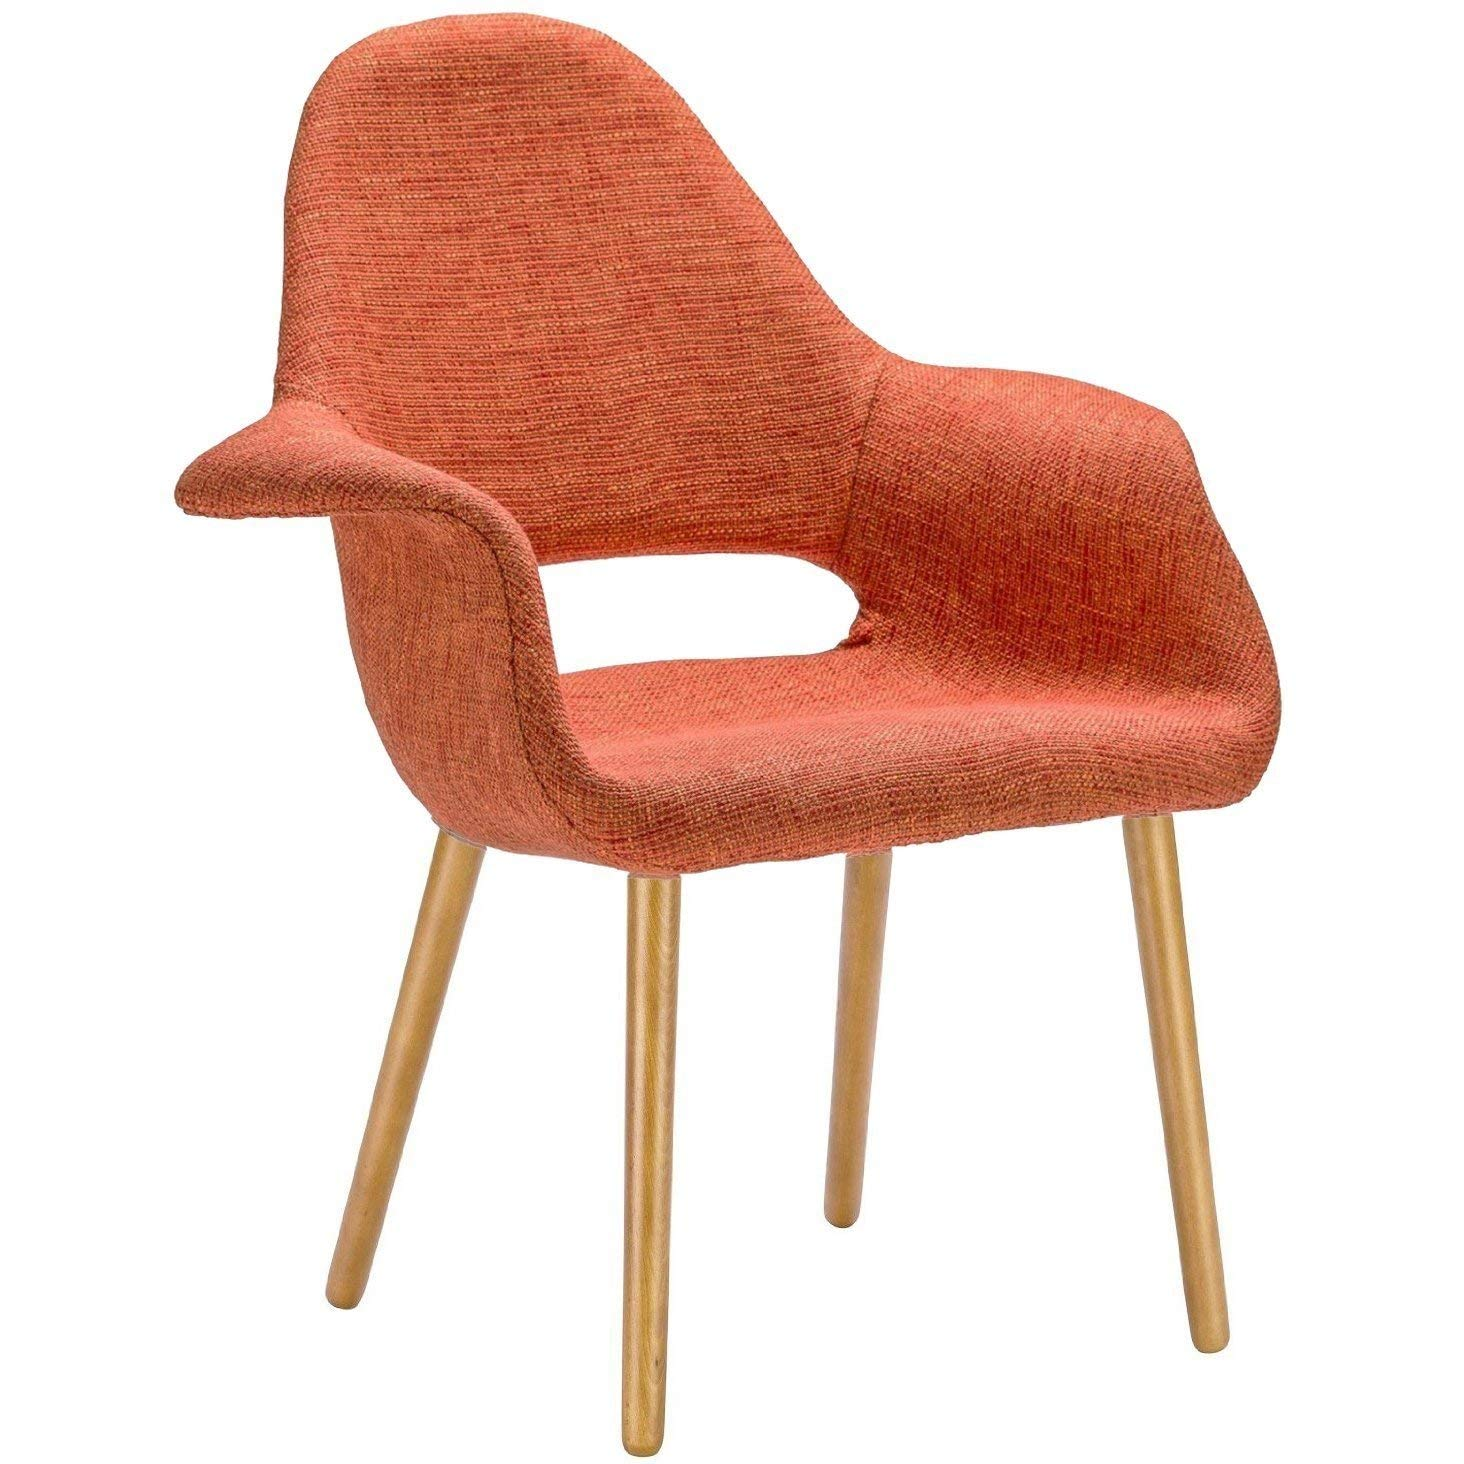 Set of 2, Mid-Century Modern Accent Chairs Natural Wood Chair Fabric Chair Armchair Orange - N/A Chair Arm Armchair Pair French Chairs Wood Century Modern Mid Style Svitlife